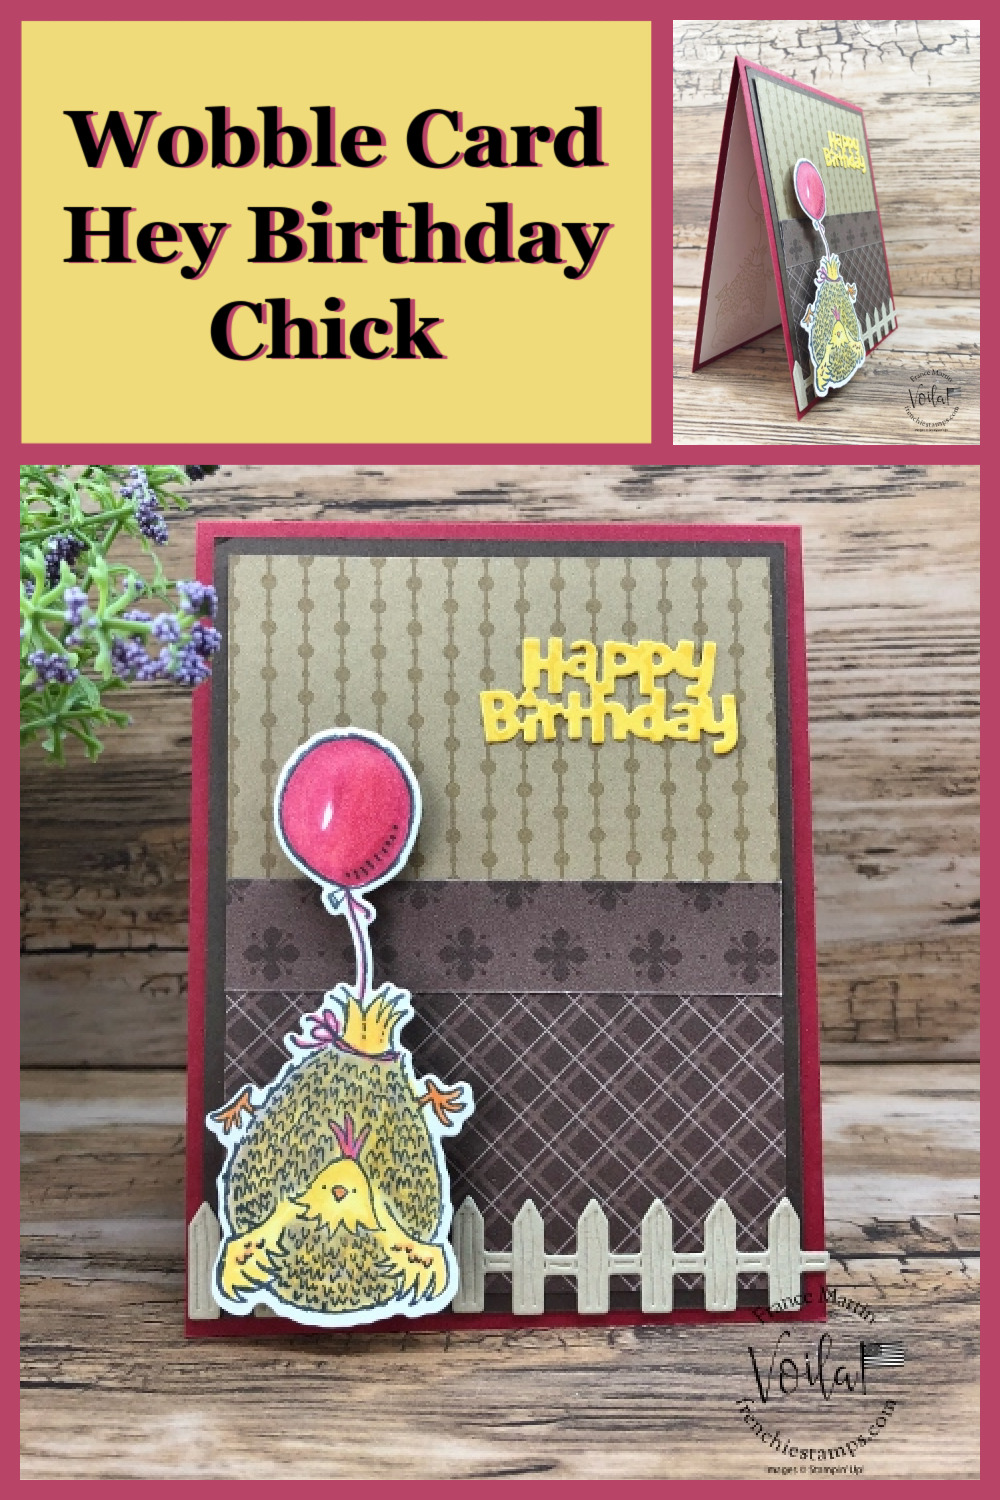 Wobble Card with Hey Birthday Chick